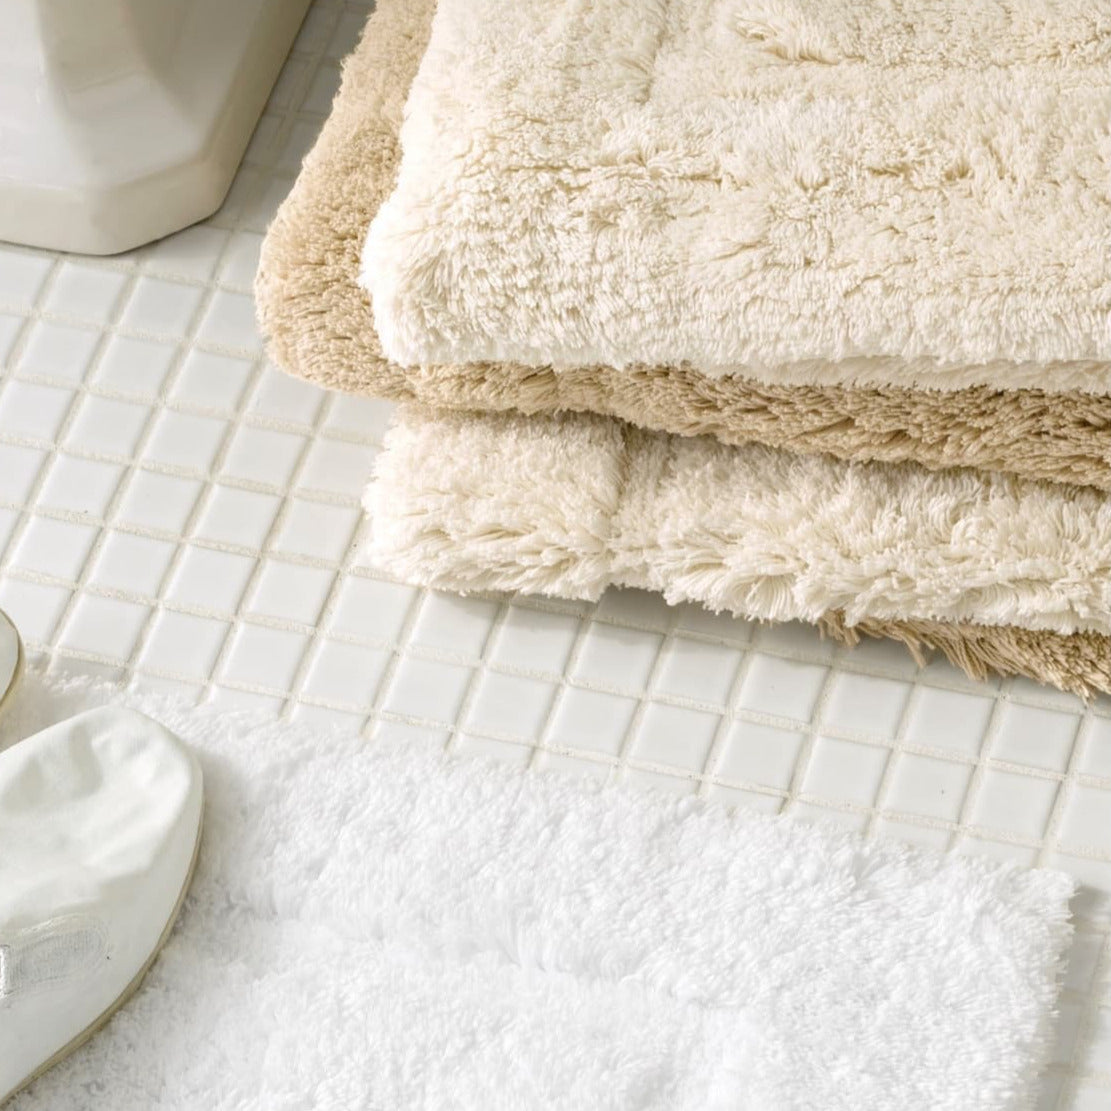 Milagro Bath Rug, White